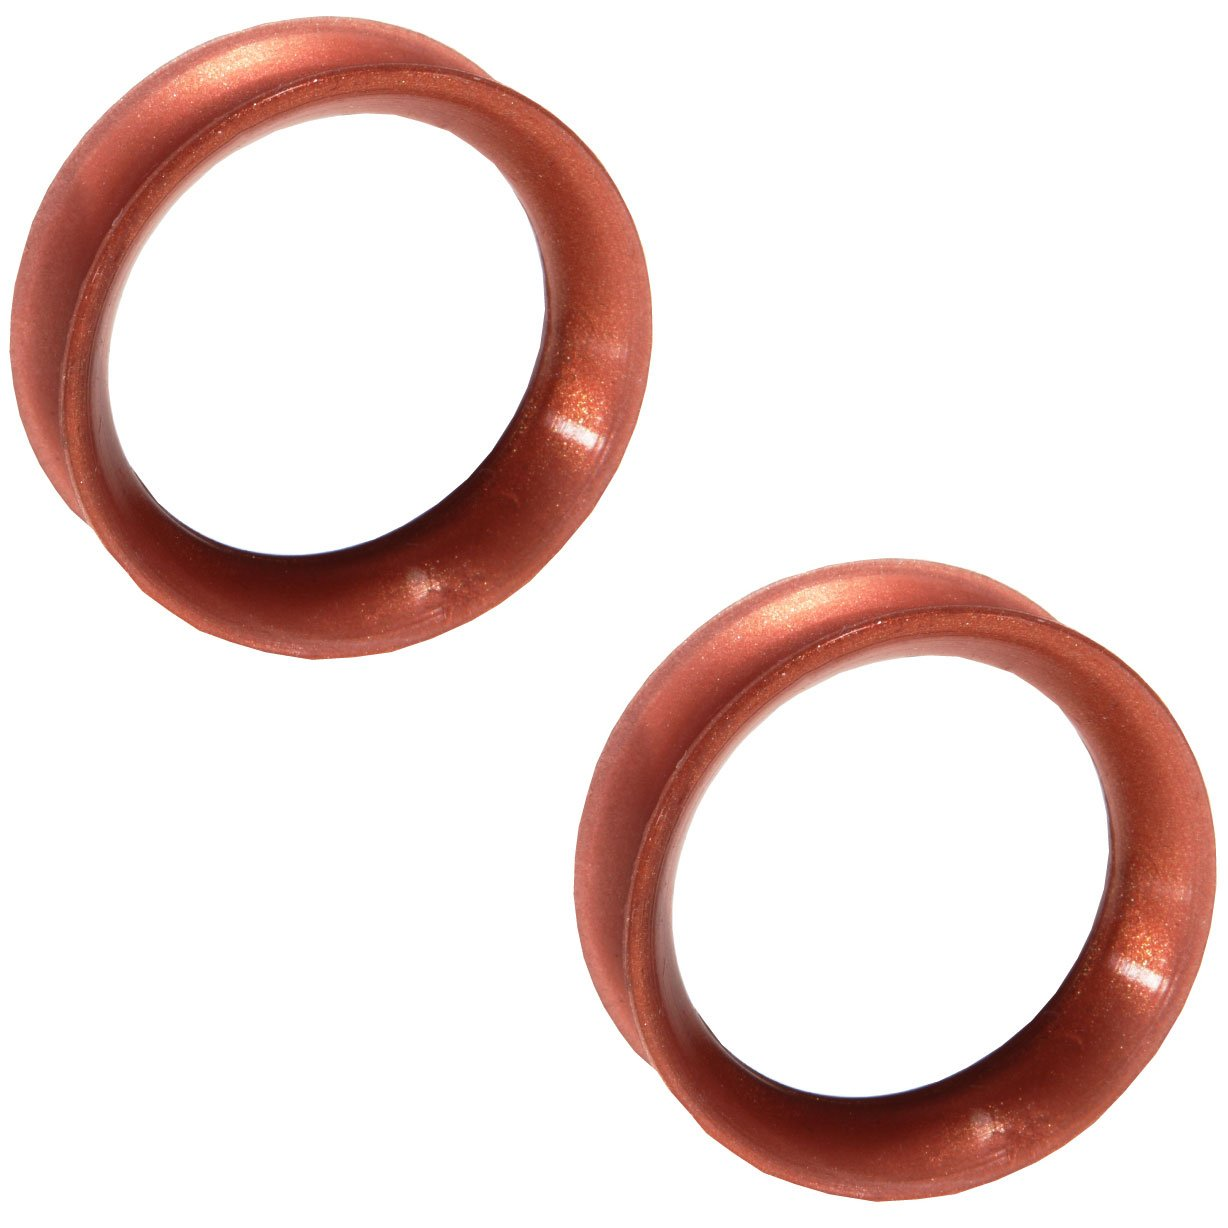 Pair of Metallic Silicone Double Flared Skin Eyelets: 3'', 3/8'' wearable, Copper by Steel Navel Body Jewelry